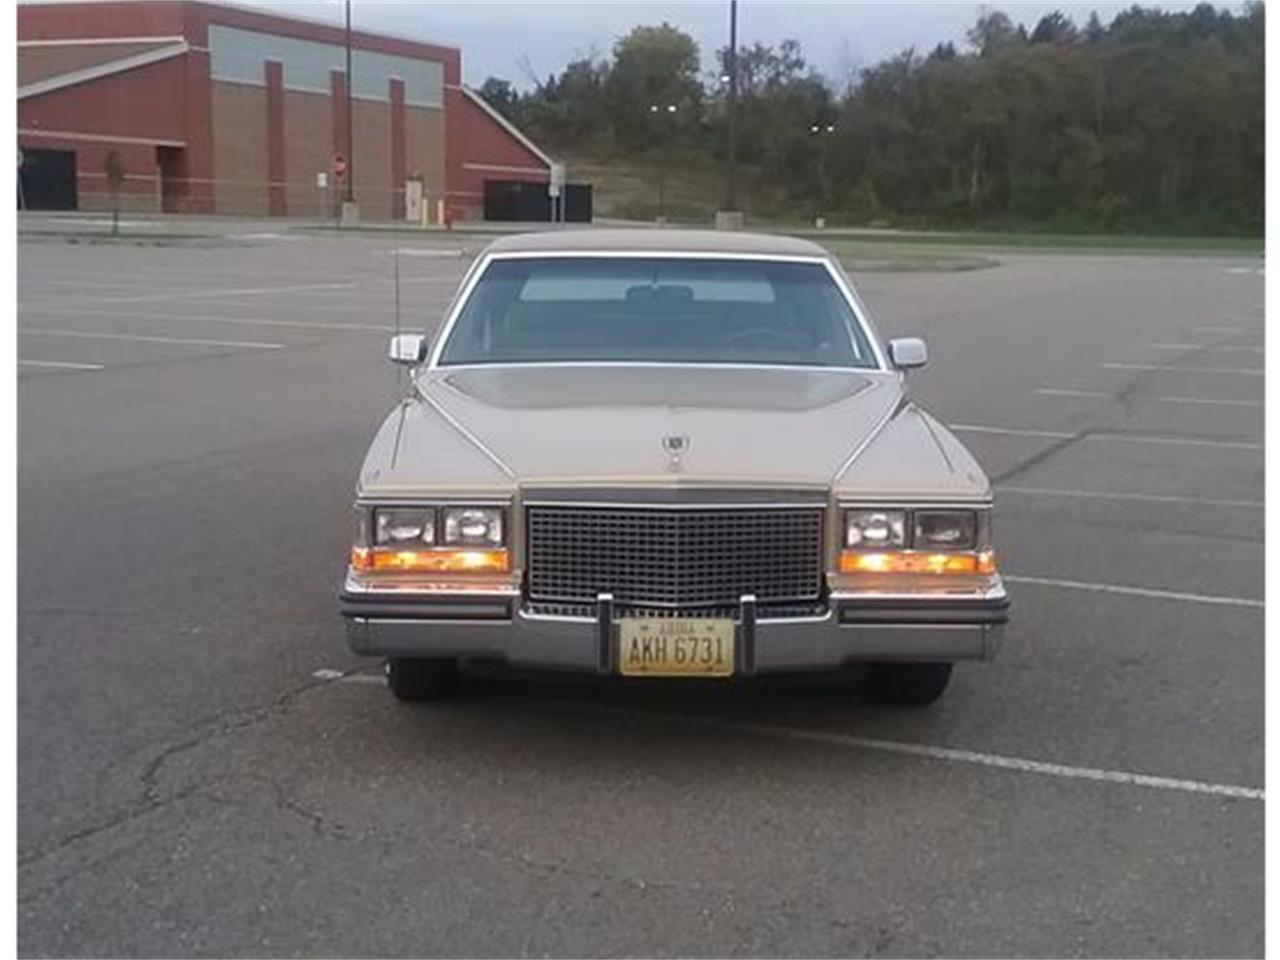 Large Picture of '87 Cadillac Brougham located in Mingo Junction Ohio Offered by a Private Seller - MB74